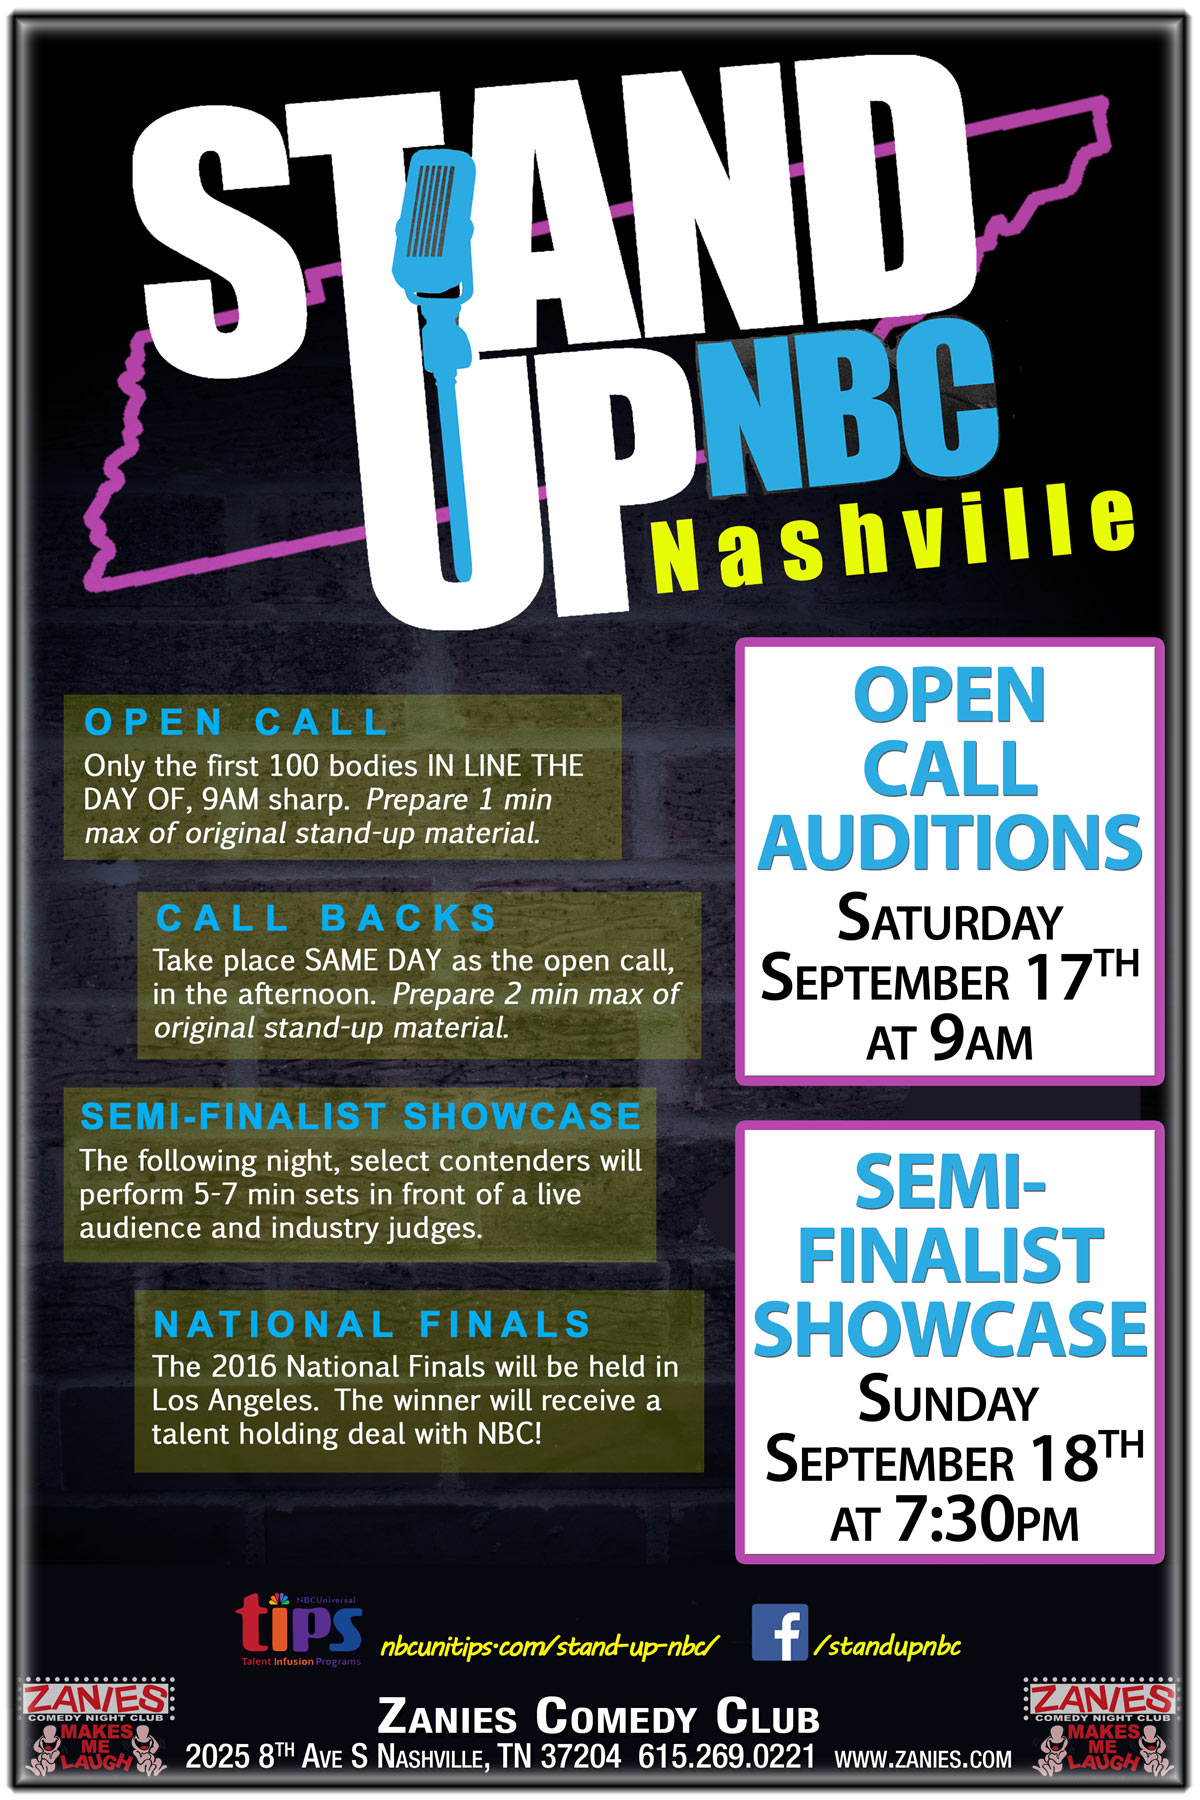 StandUP NBC Nashville Semi-Finalist Showcase live at Zanies Comedy Club Nashville Sunday, September 18, 2016